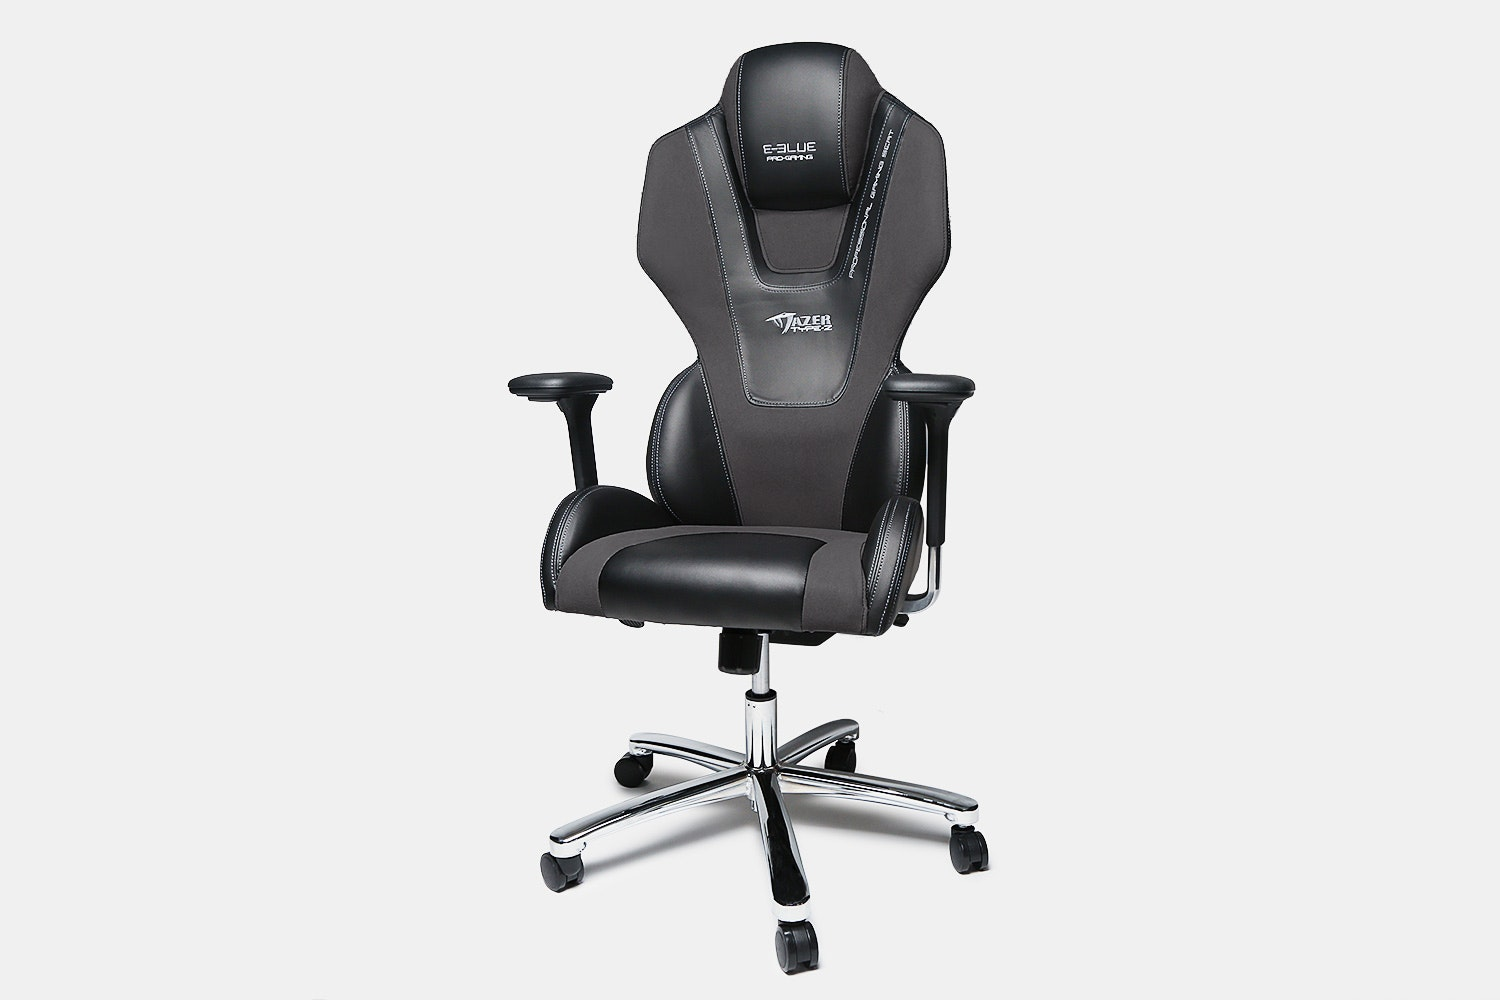 E Blue Mazer Gaming Chair Special Edition Price Reviews Massdrop